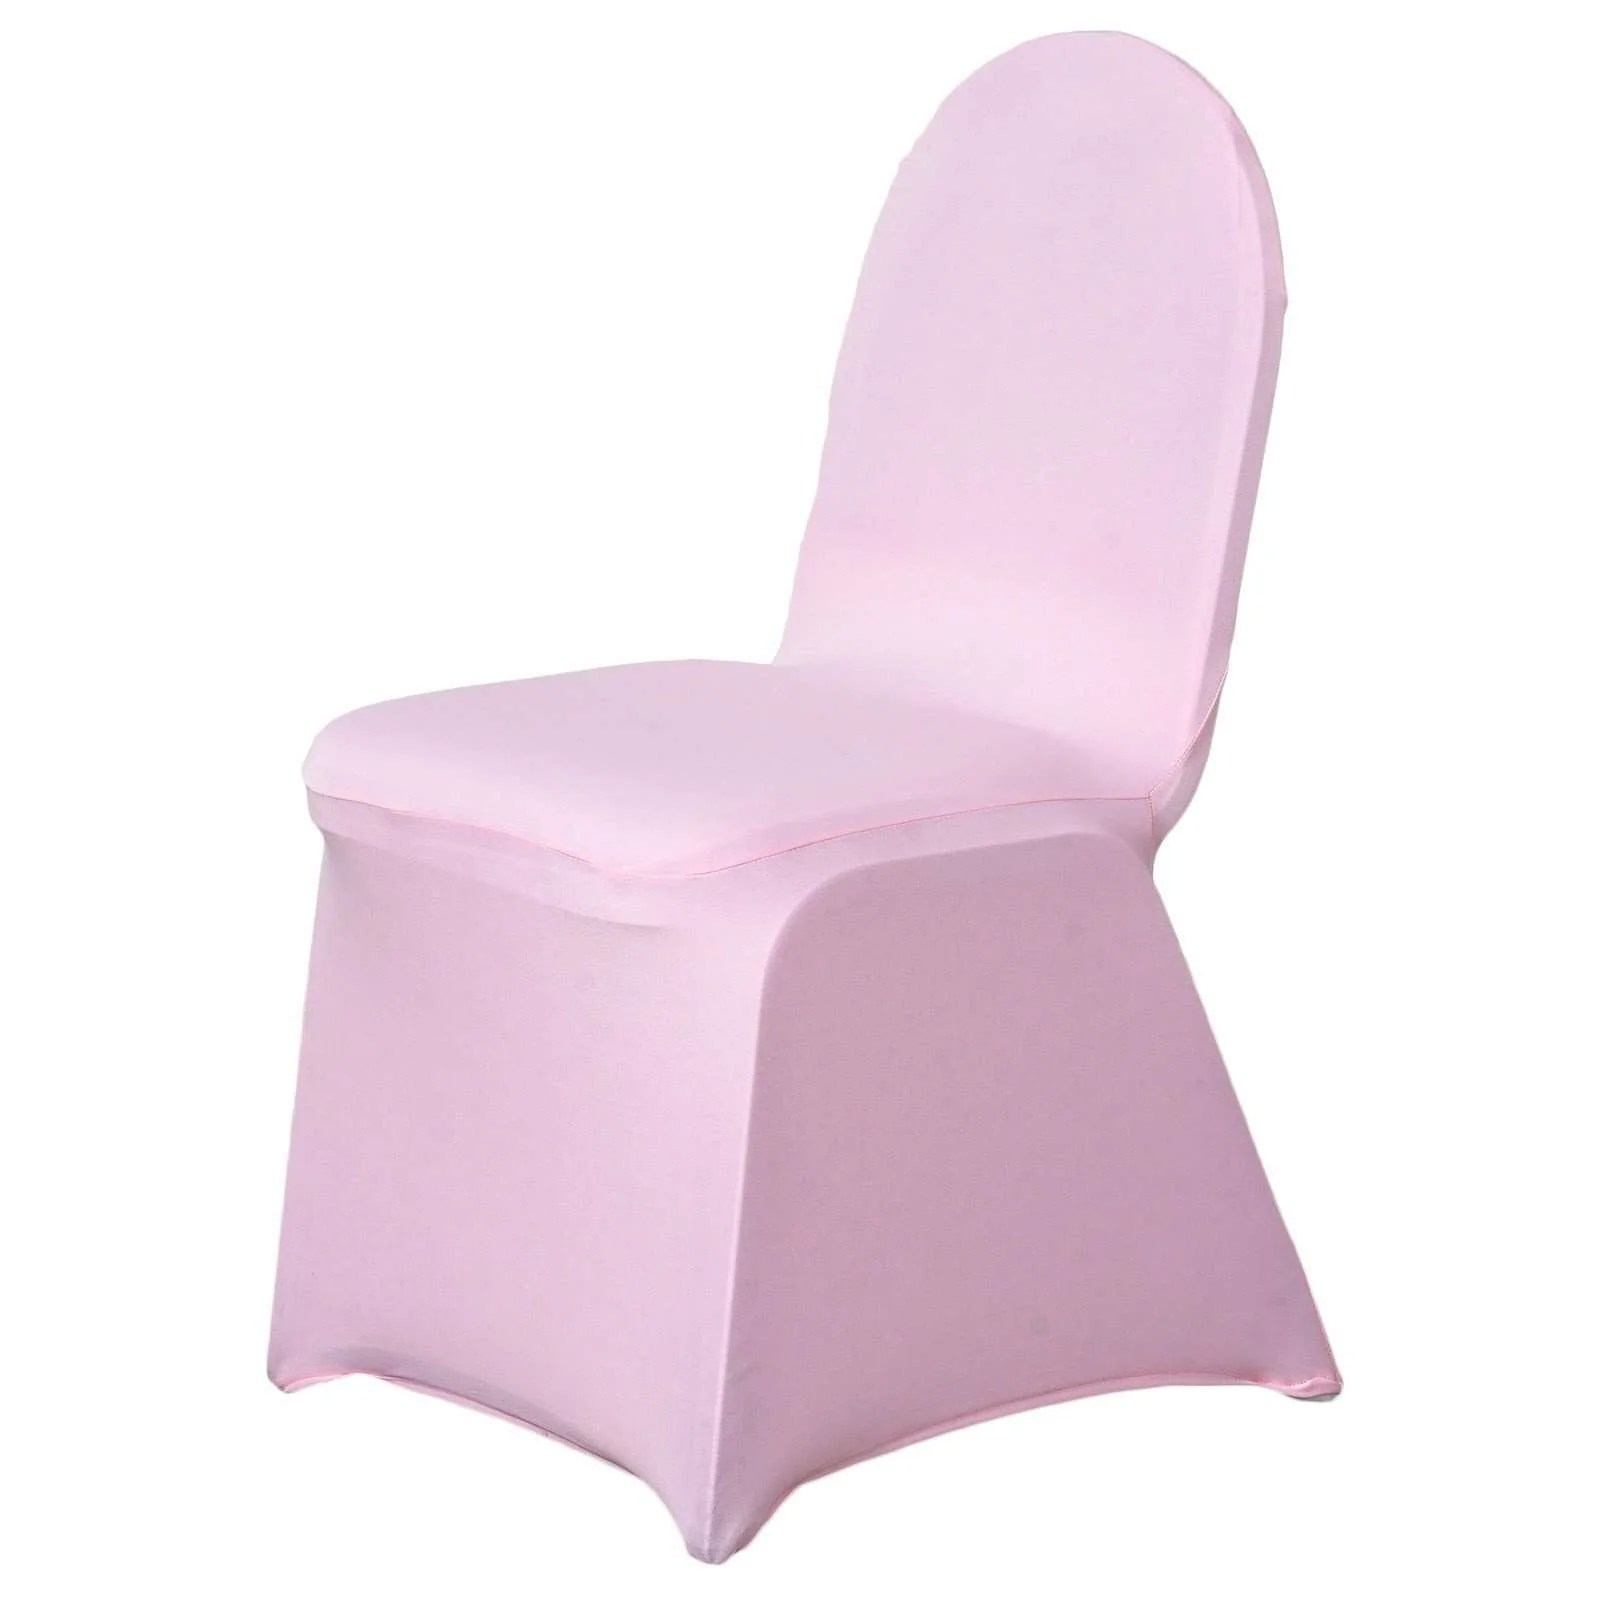 chair covers pink modern chaise lounge chairs living room wholesale spandex stretch banquet cover wedding party